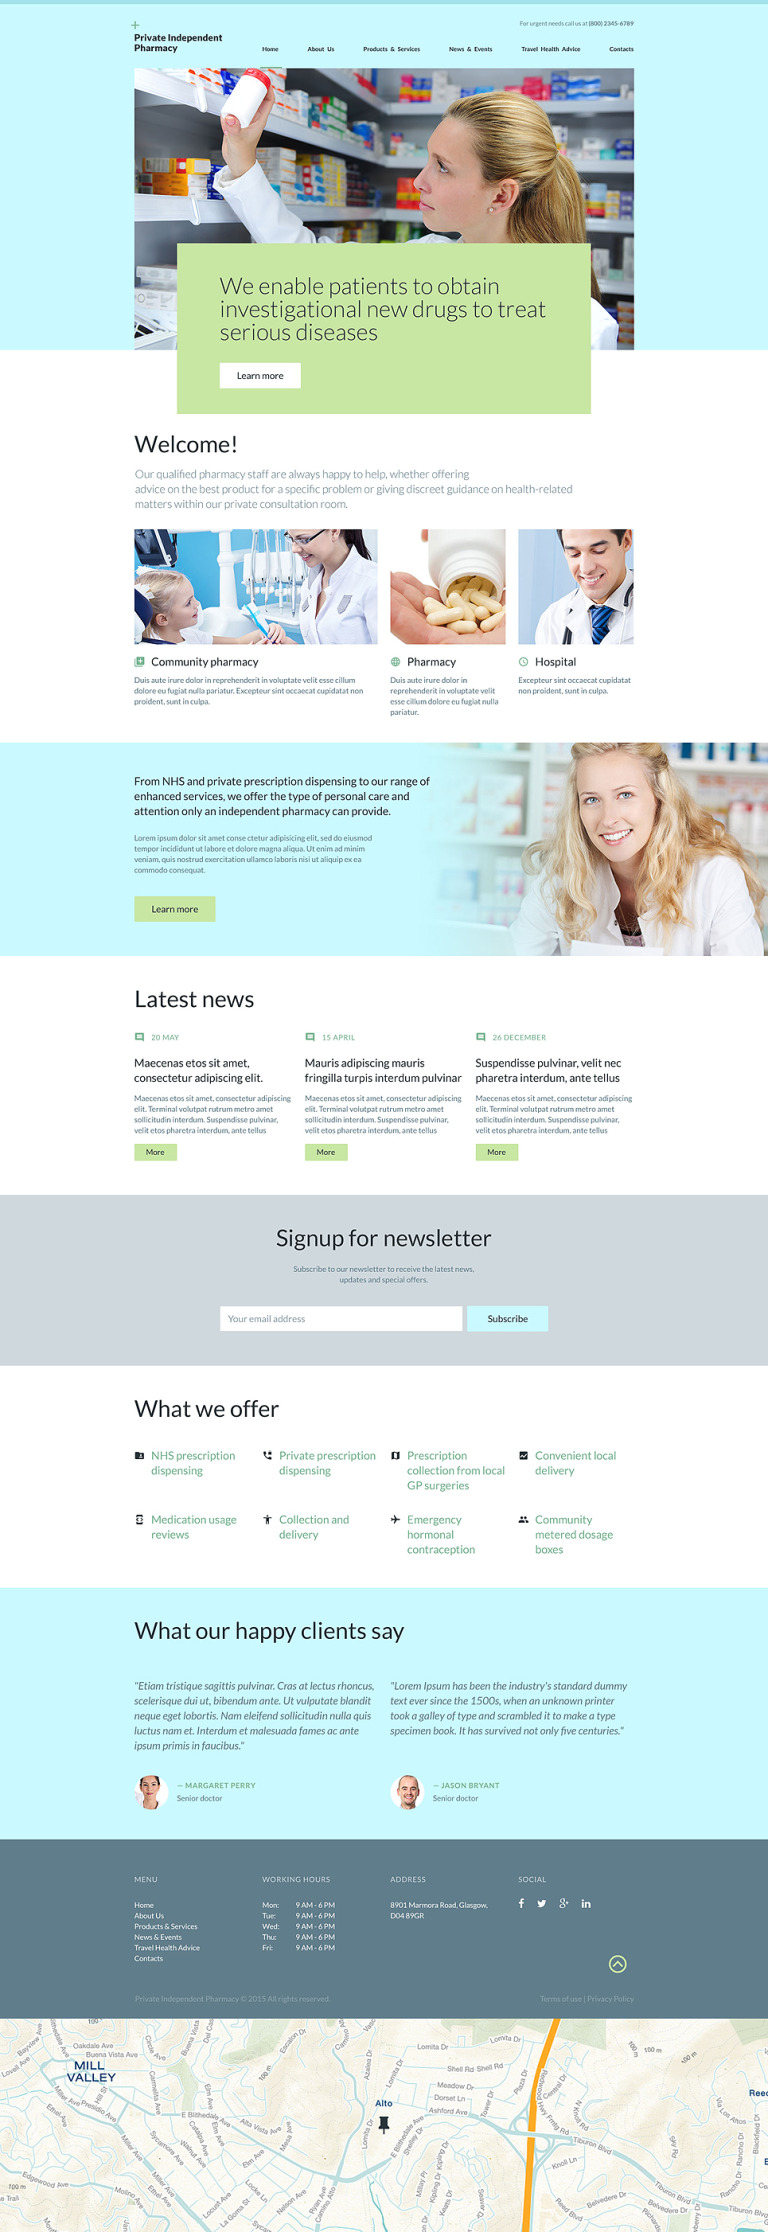 Private Independent Pharmacy Website Template New Screenshots BIG